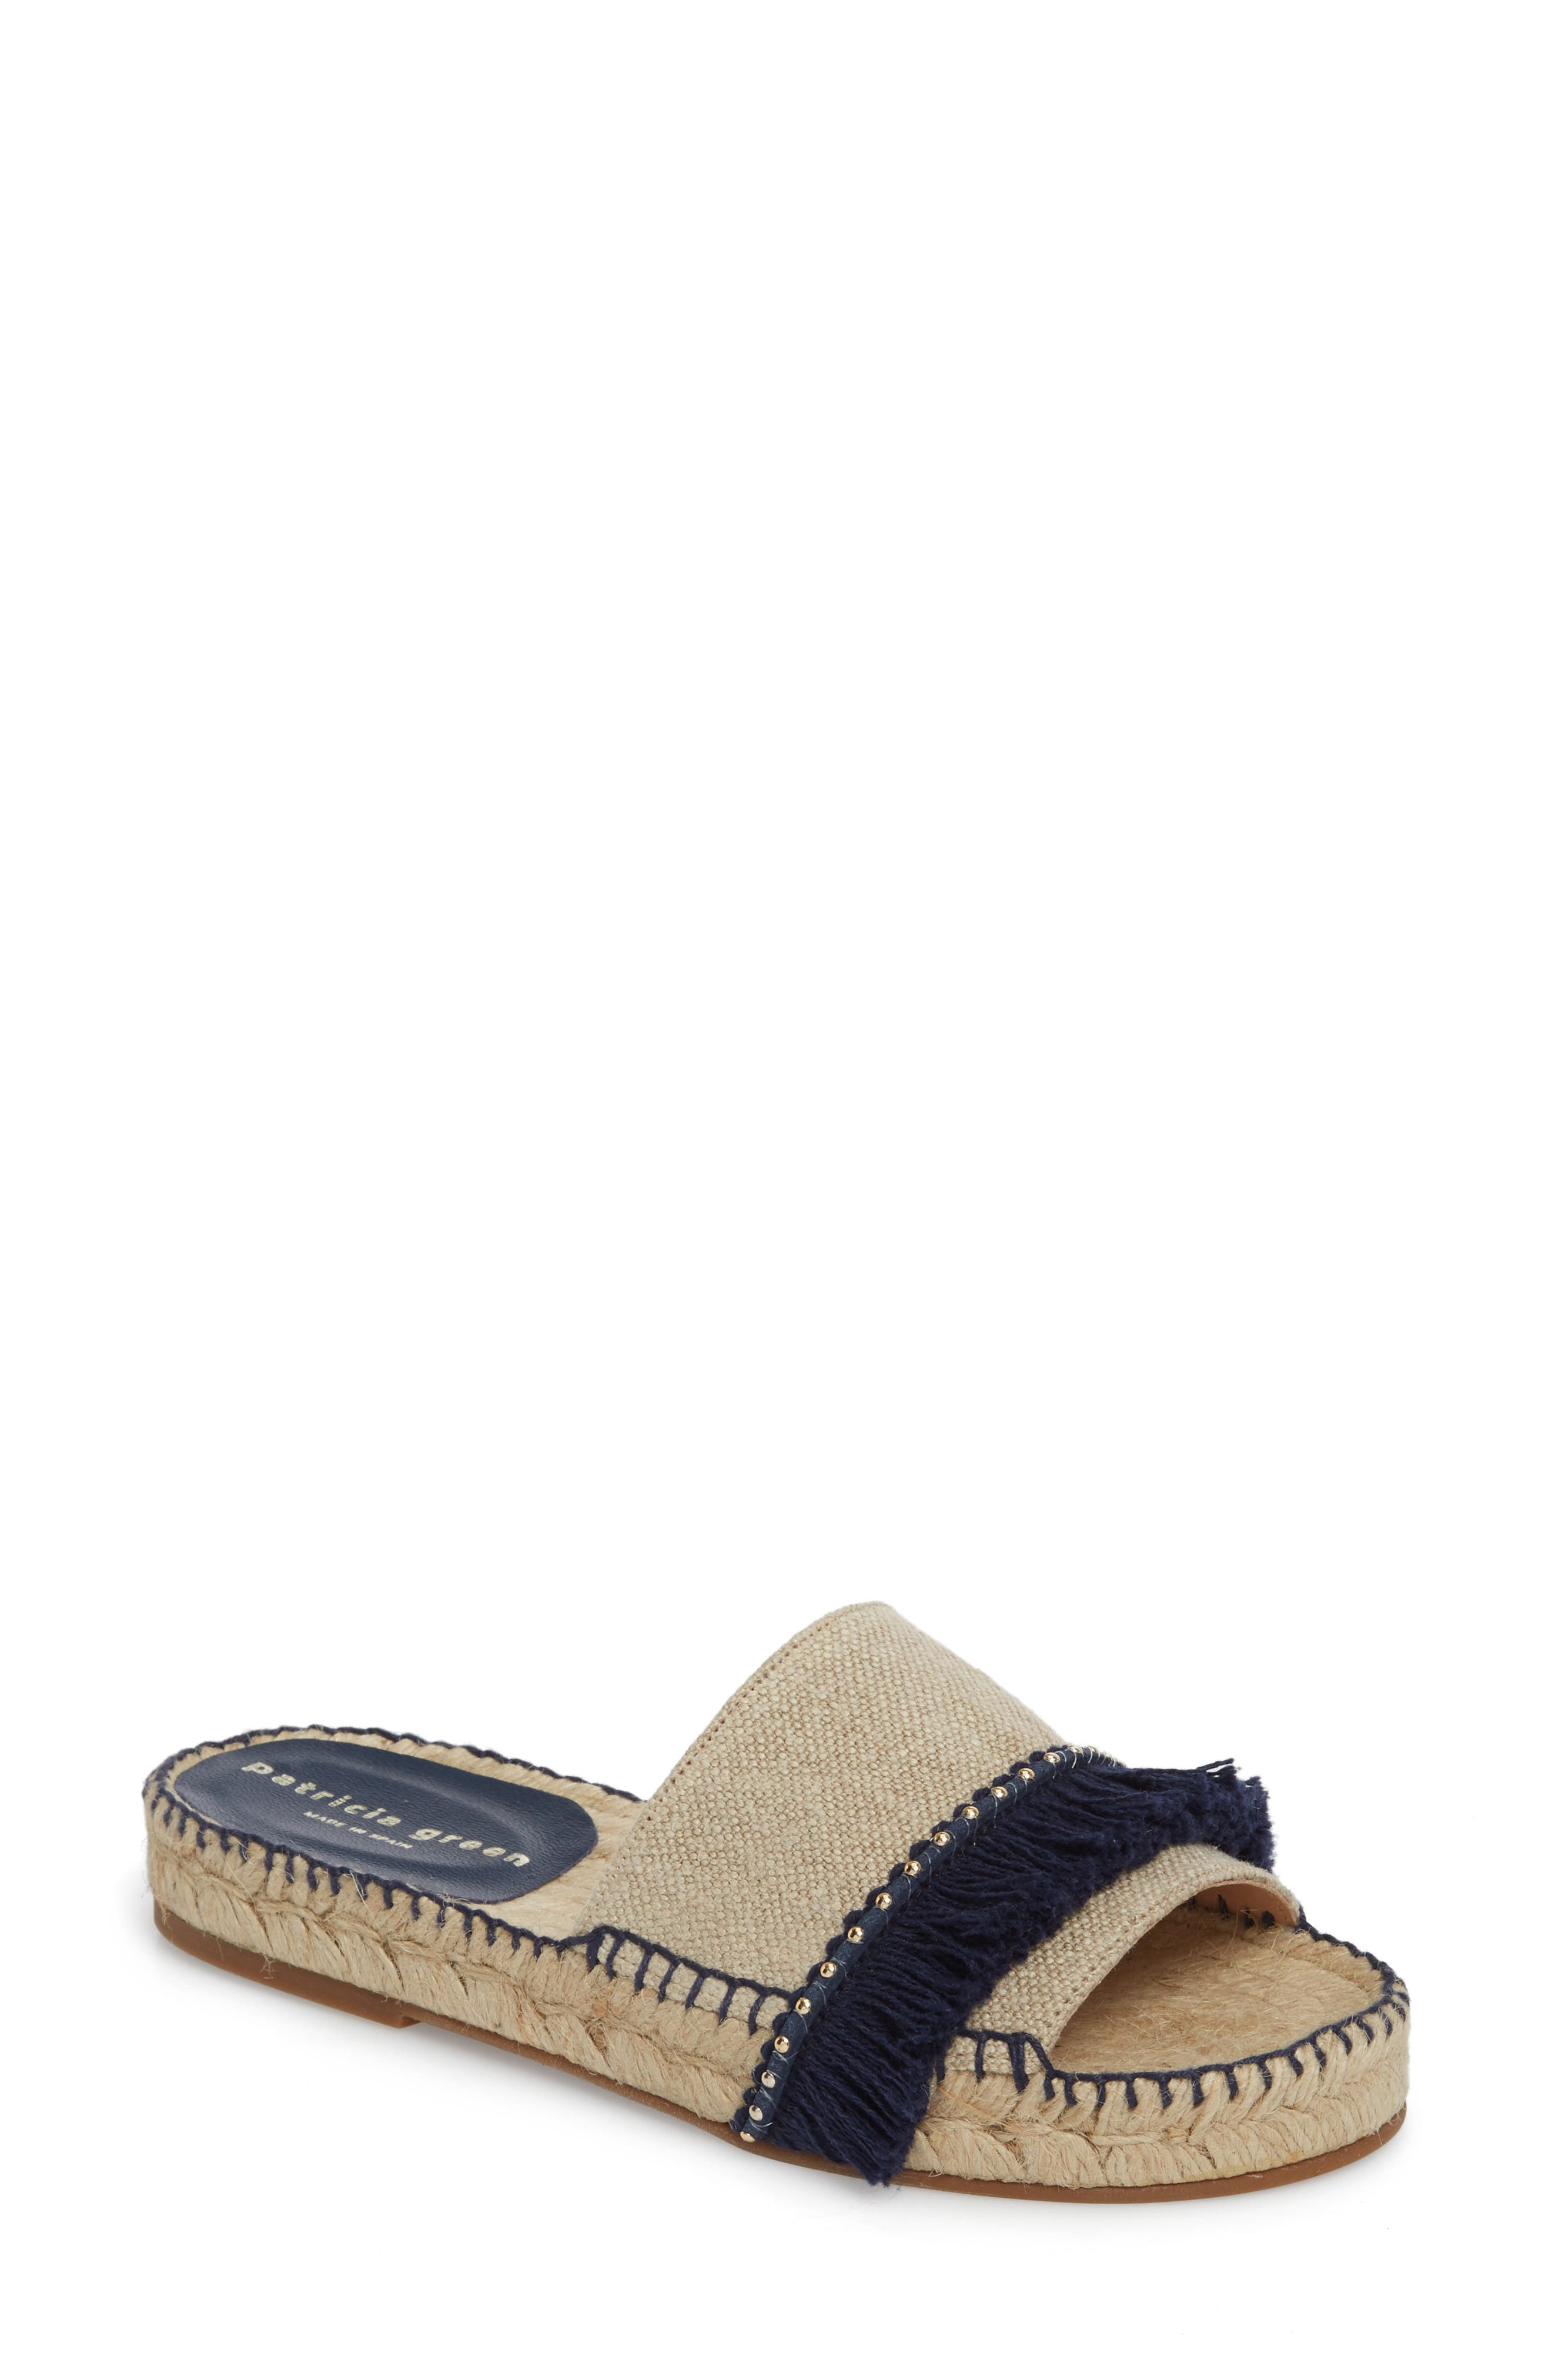 Bahama Espadrille Sandal,                         Main,                         color, Navy Leather